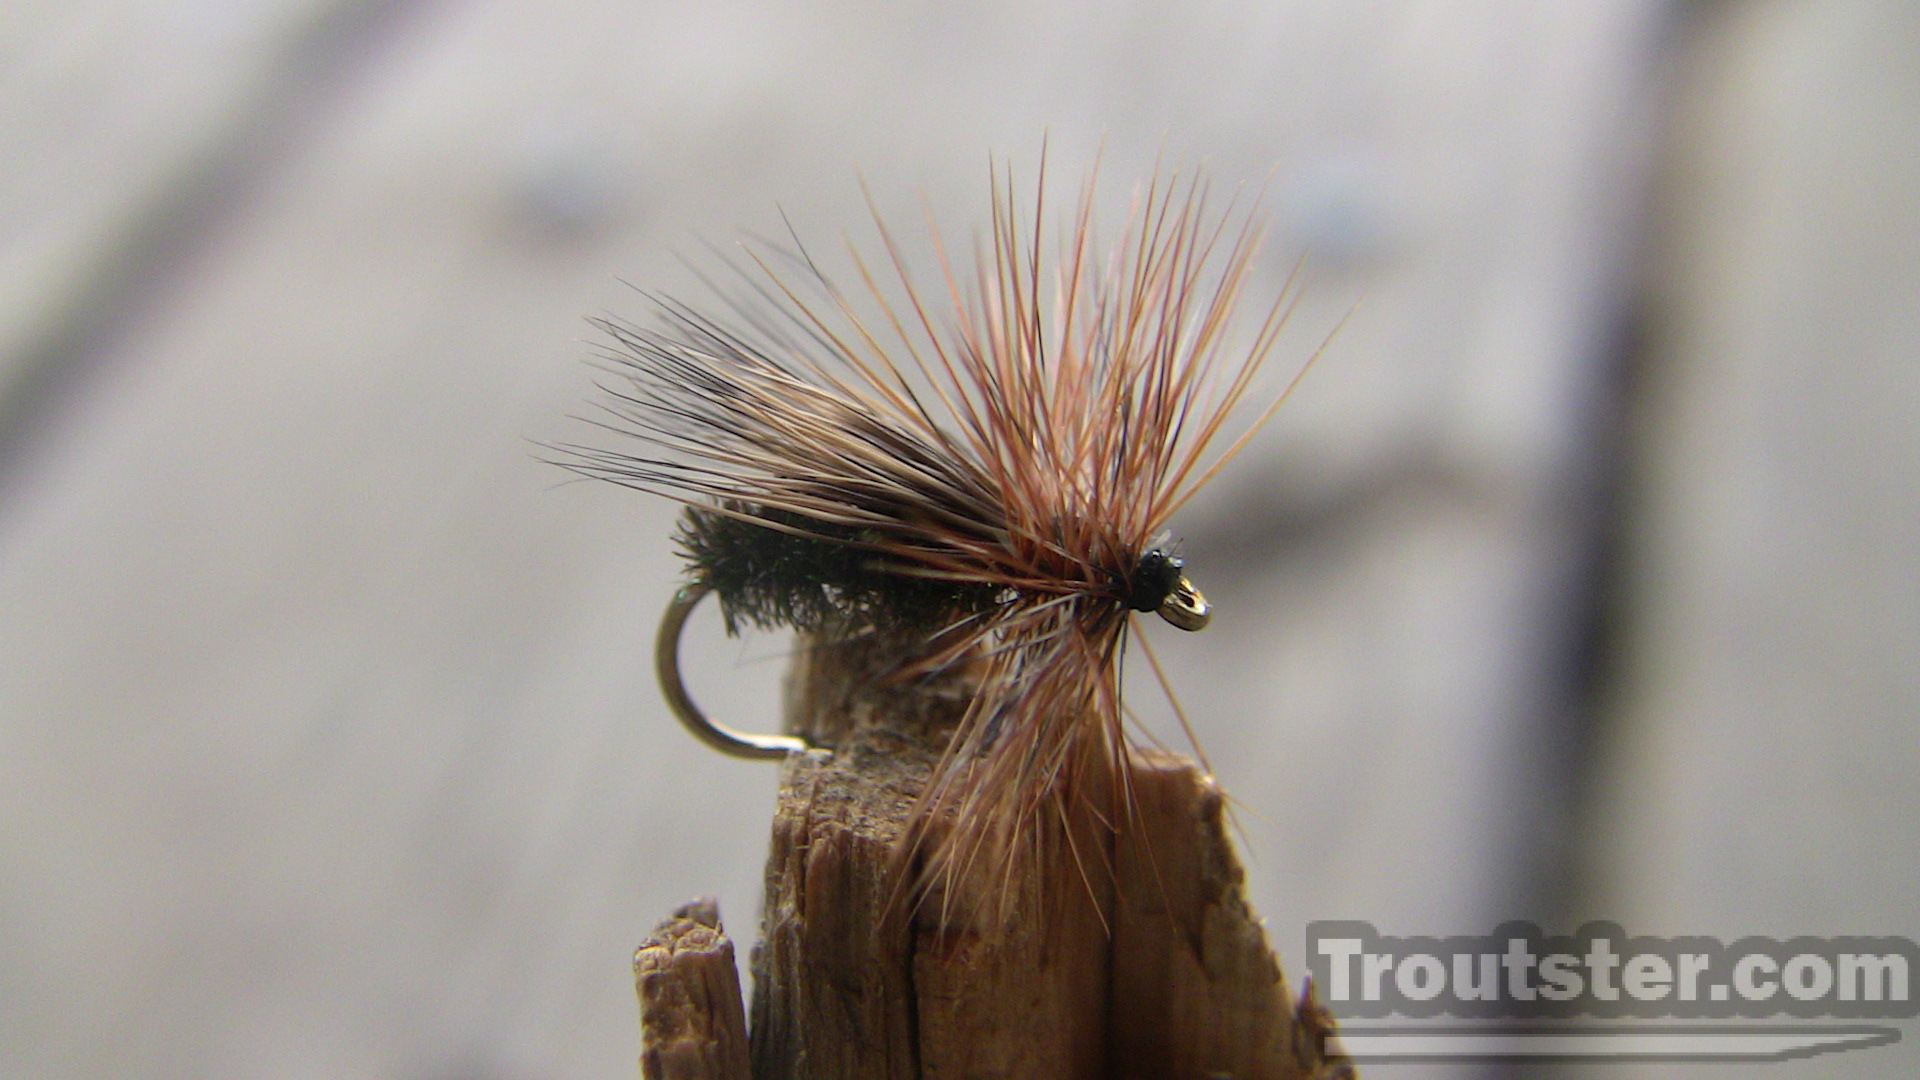 The Peacock caddis fly pattern tied with peackock hurl, and deer hair.